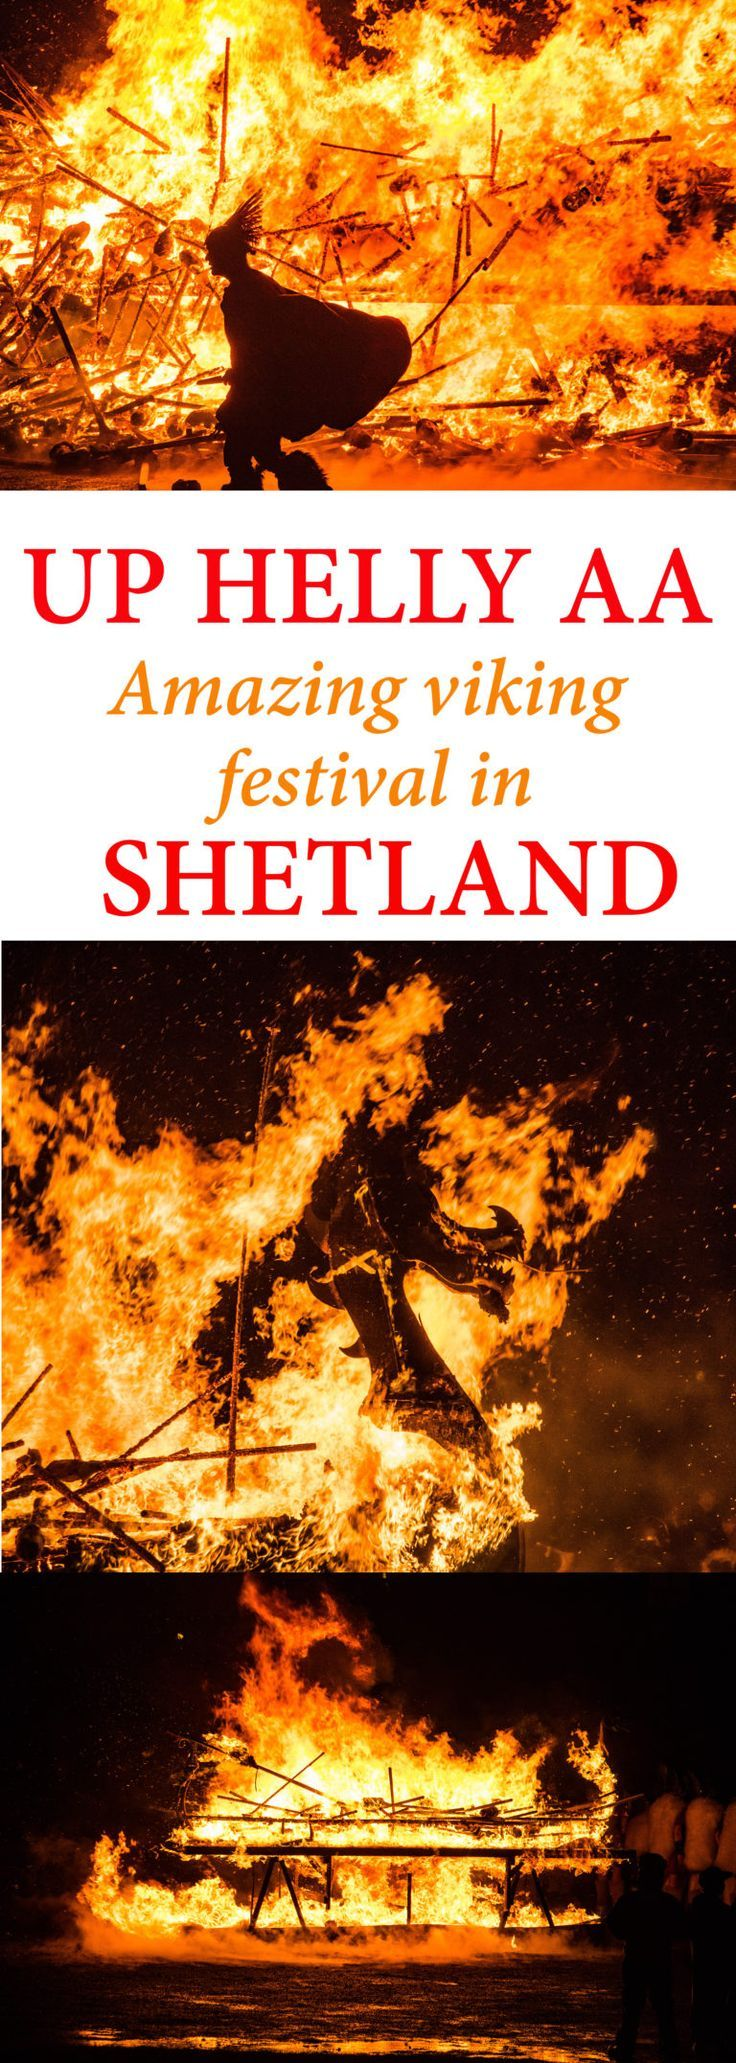 Amazing viking experiences: how to go to Up Helly Aa, a viking festival in Shetland, Scotland